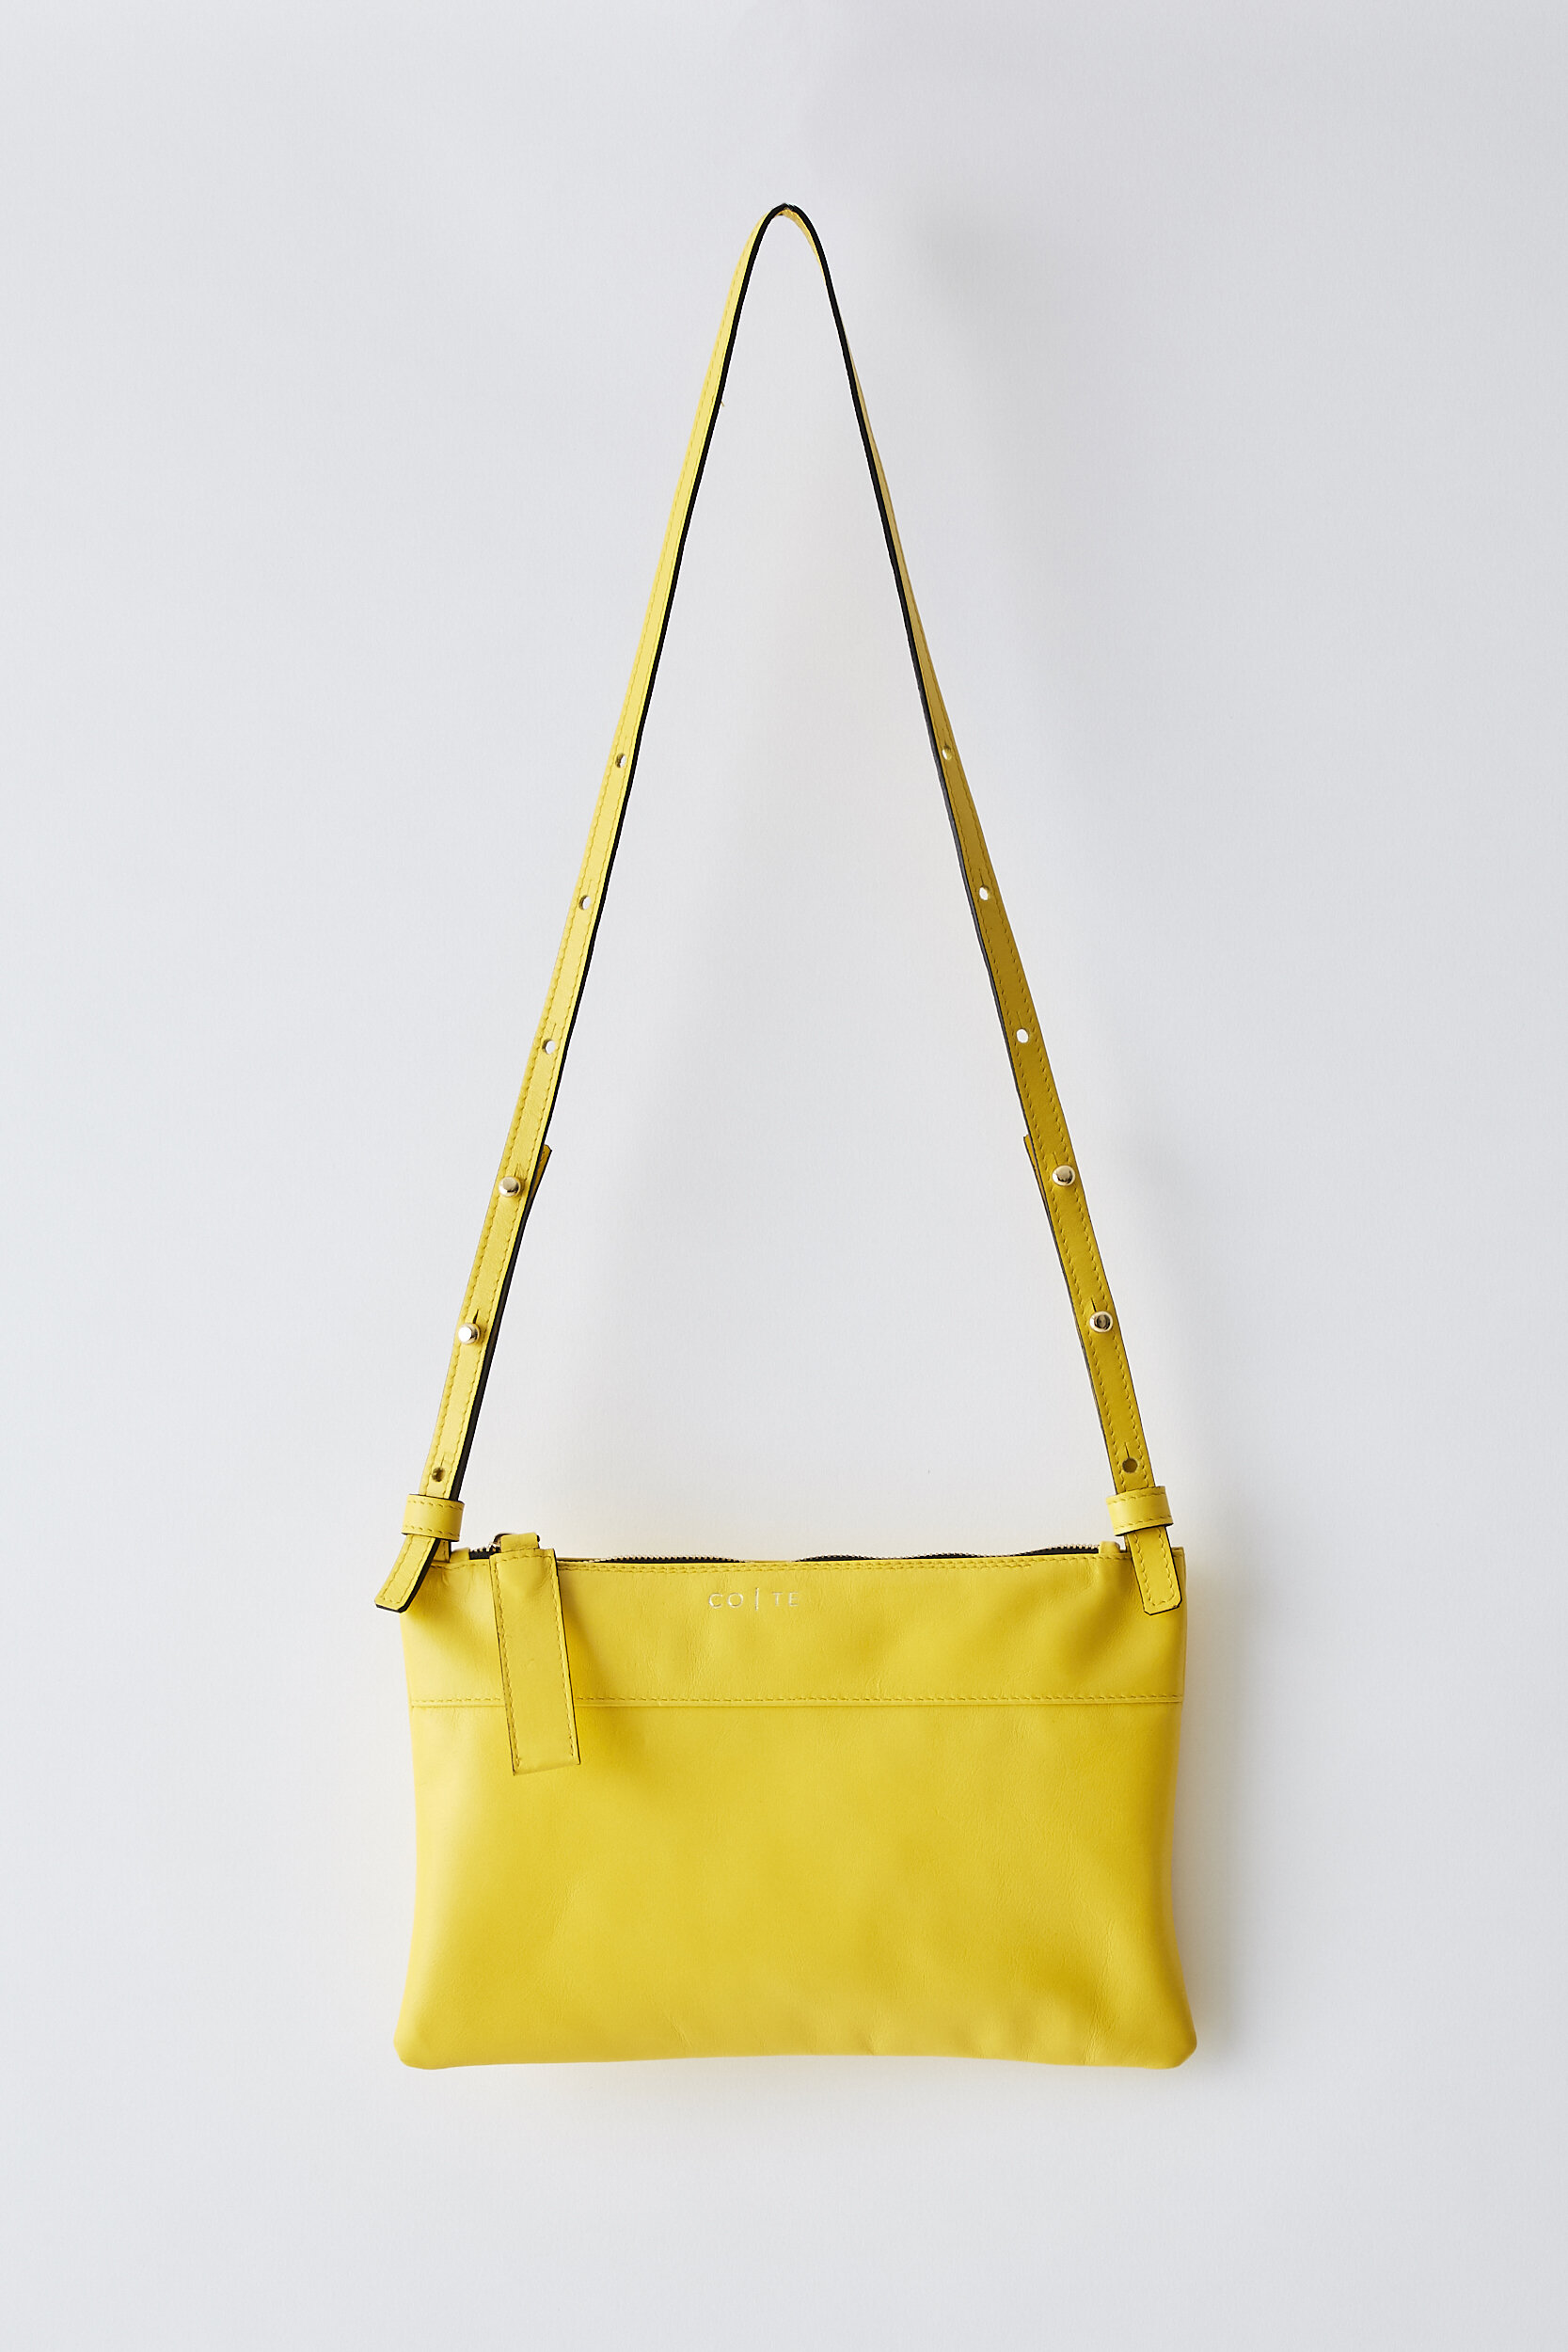 COTE SS2020 Friday Clutch yellow